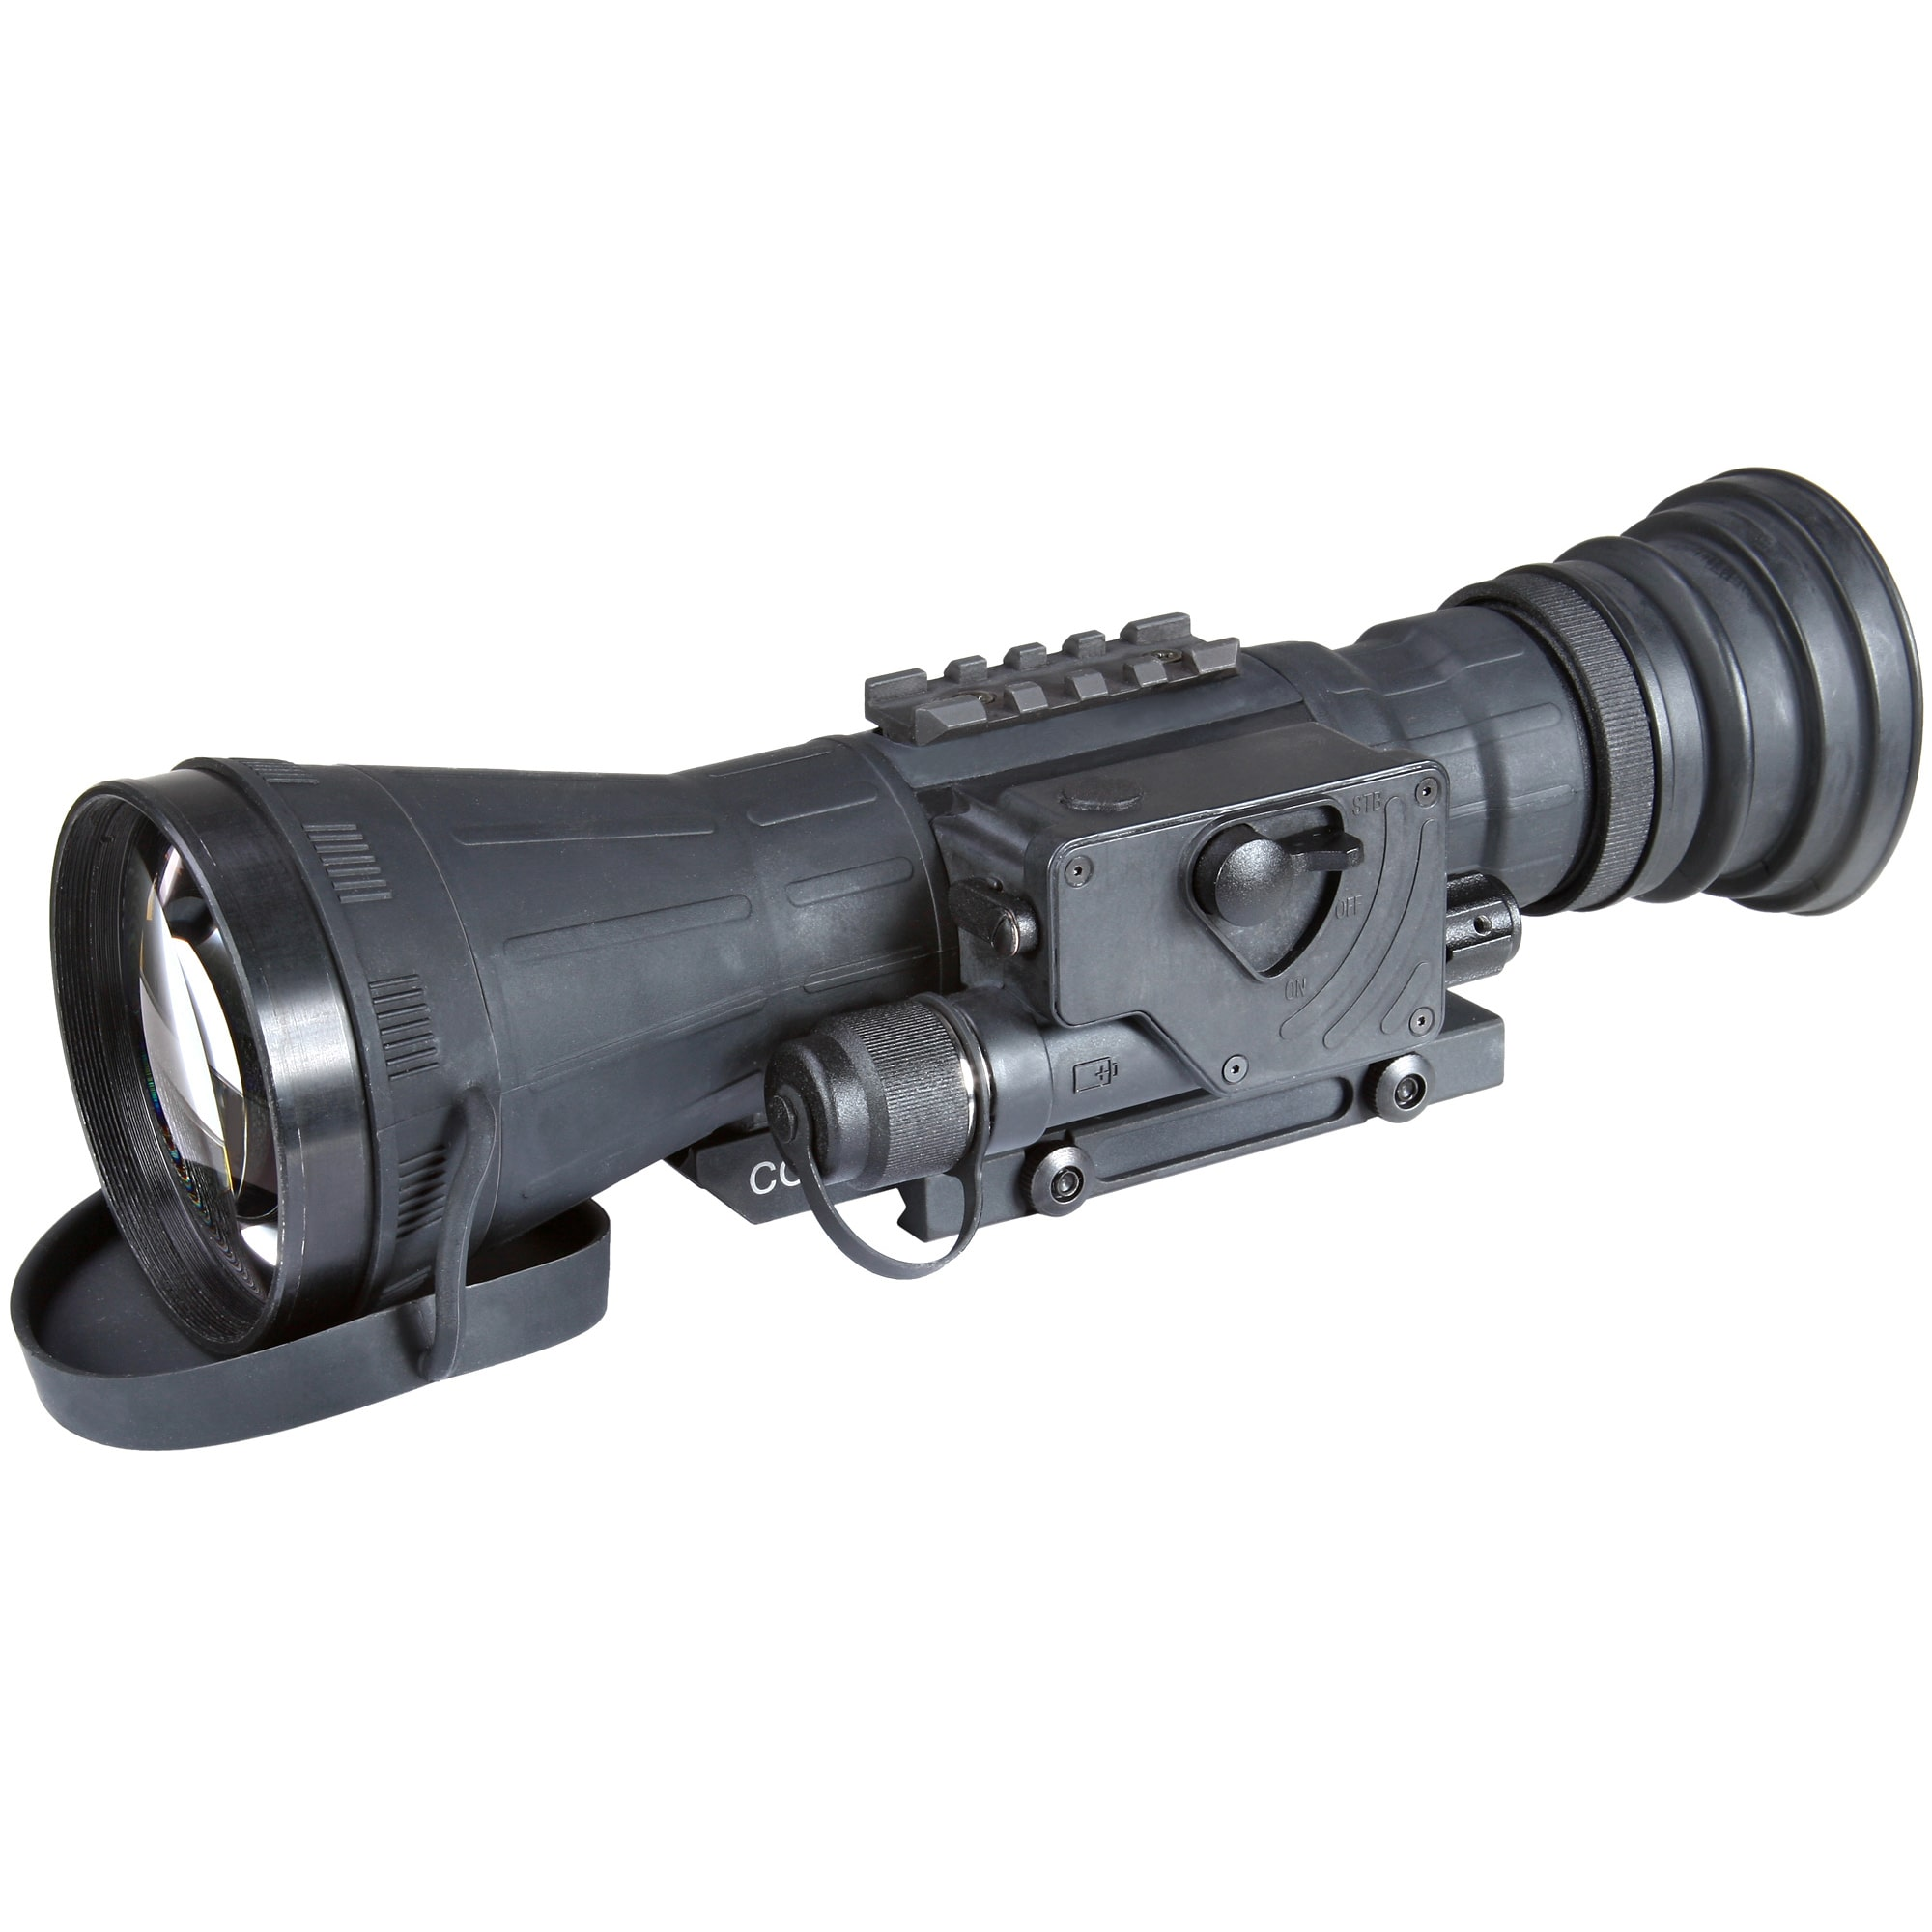 Armasight CO-LR-3 Alpha MG Night Vision Long Range Clip-On System by Overstock